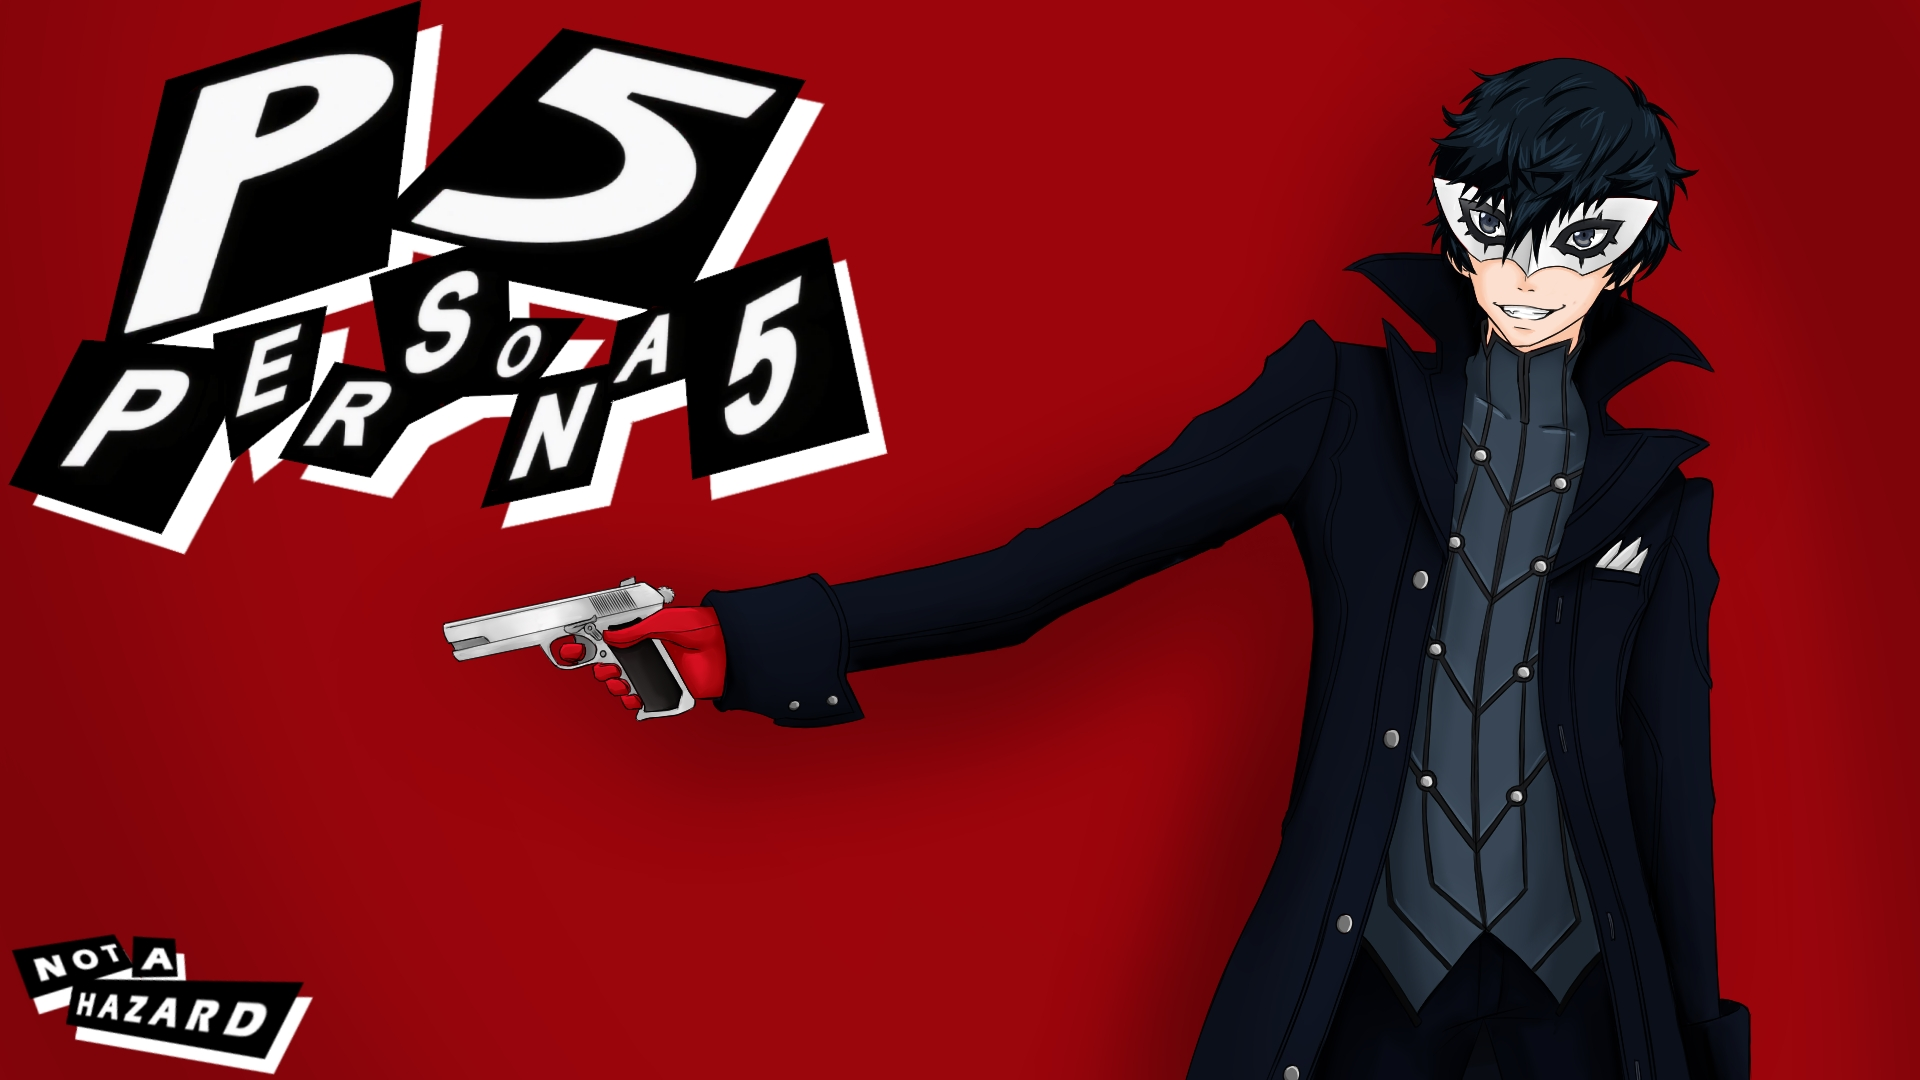 High Resolution Wallpaper | Persona 5 1920x1080 px